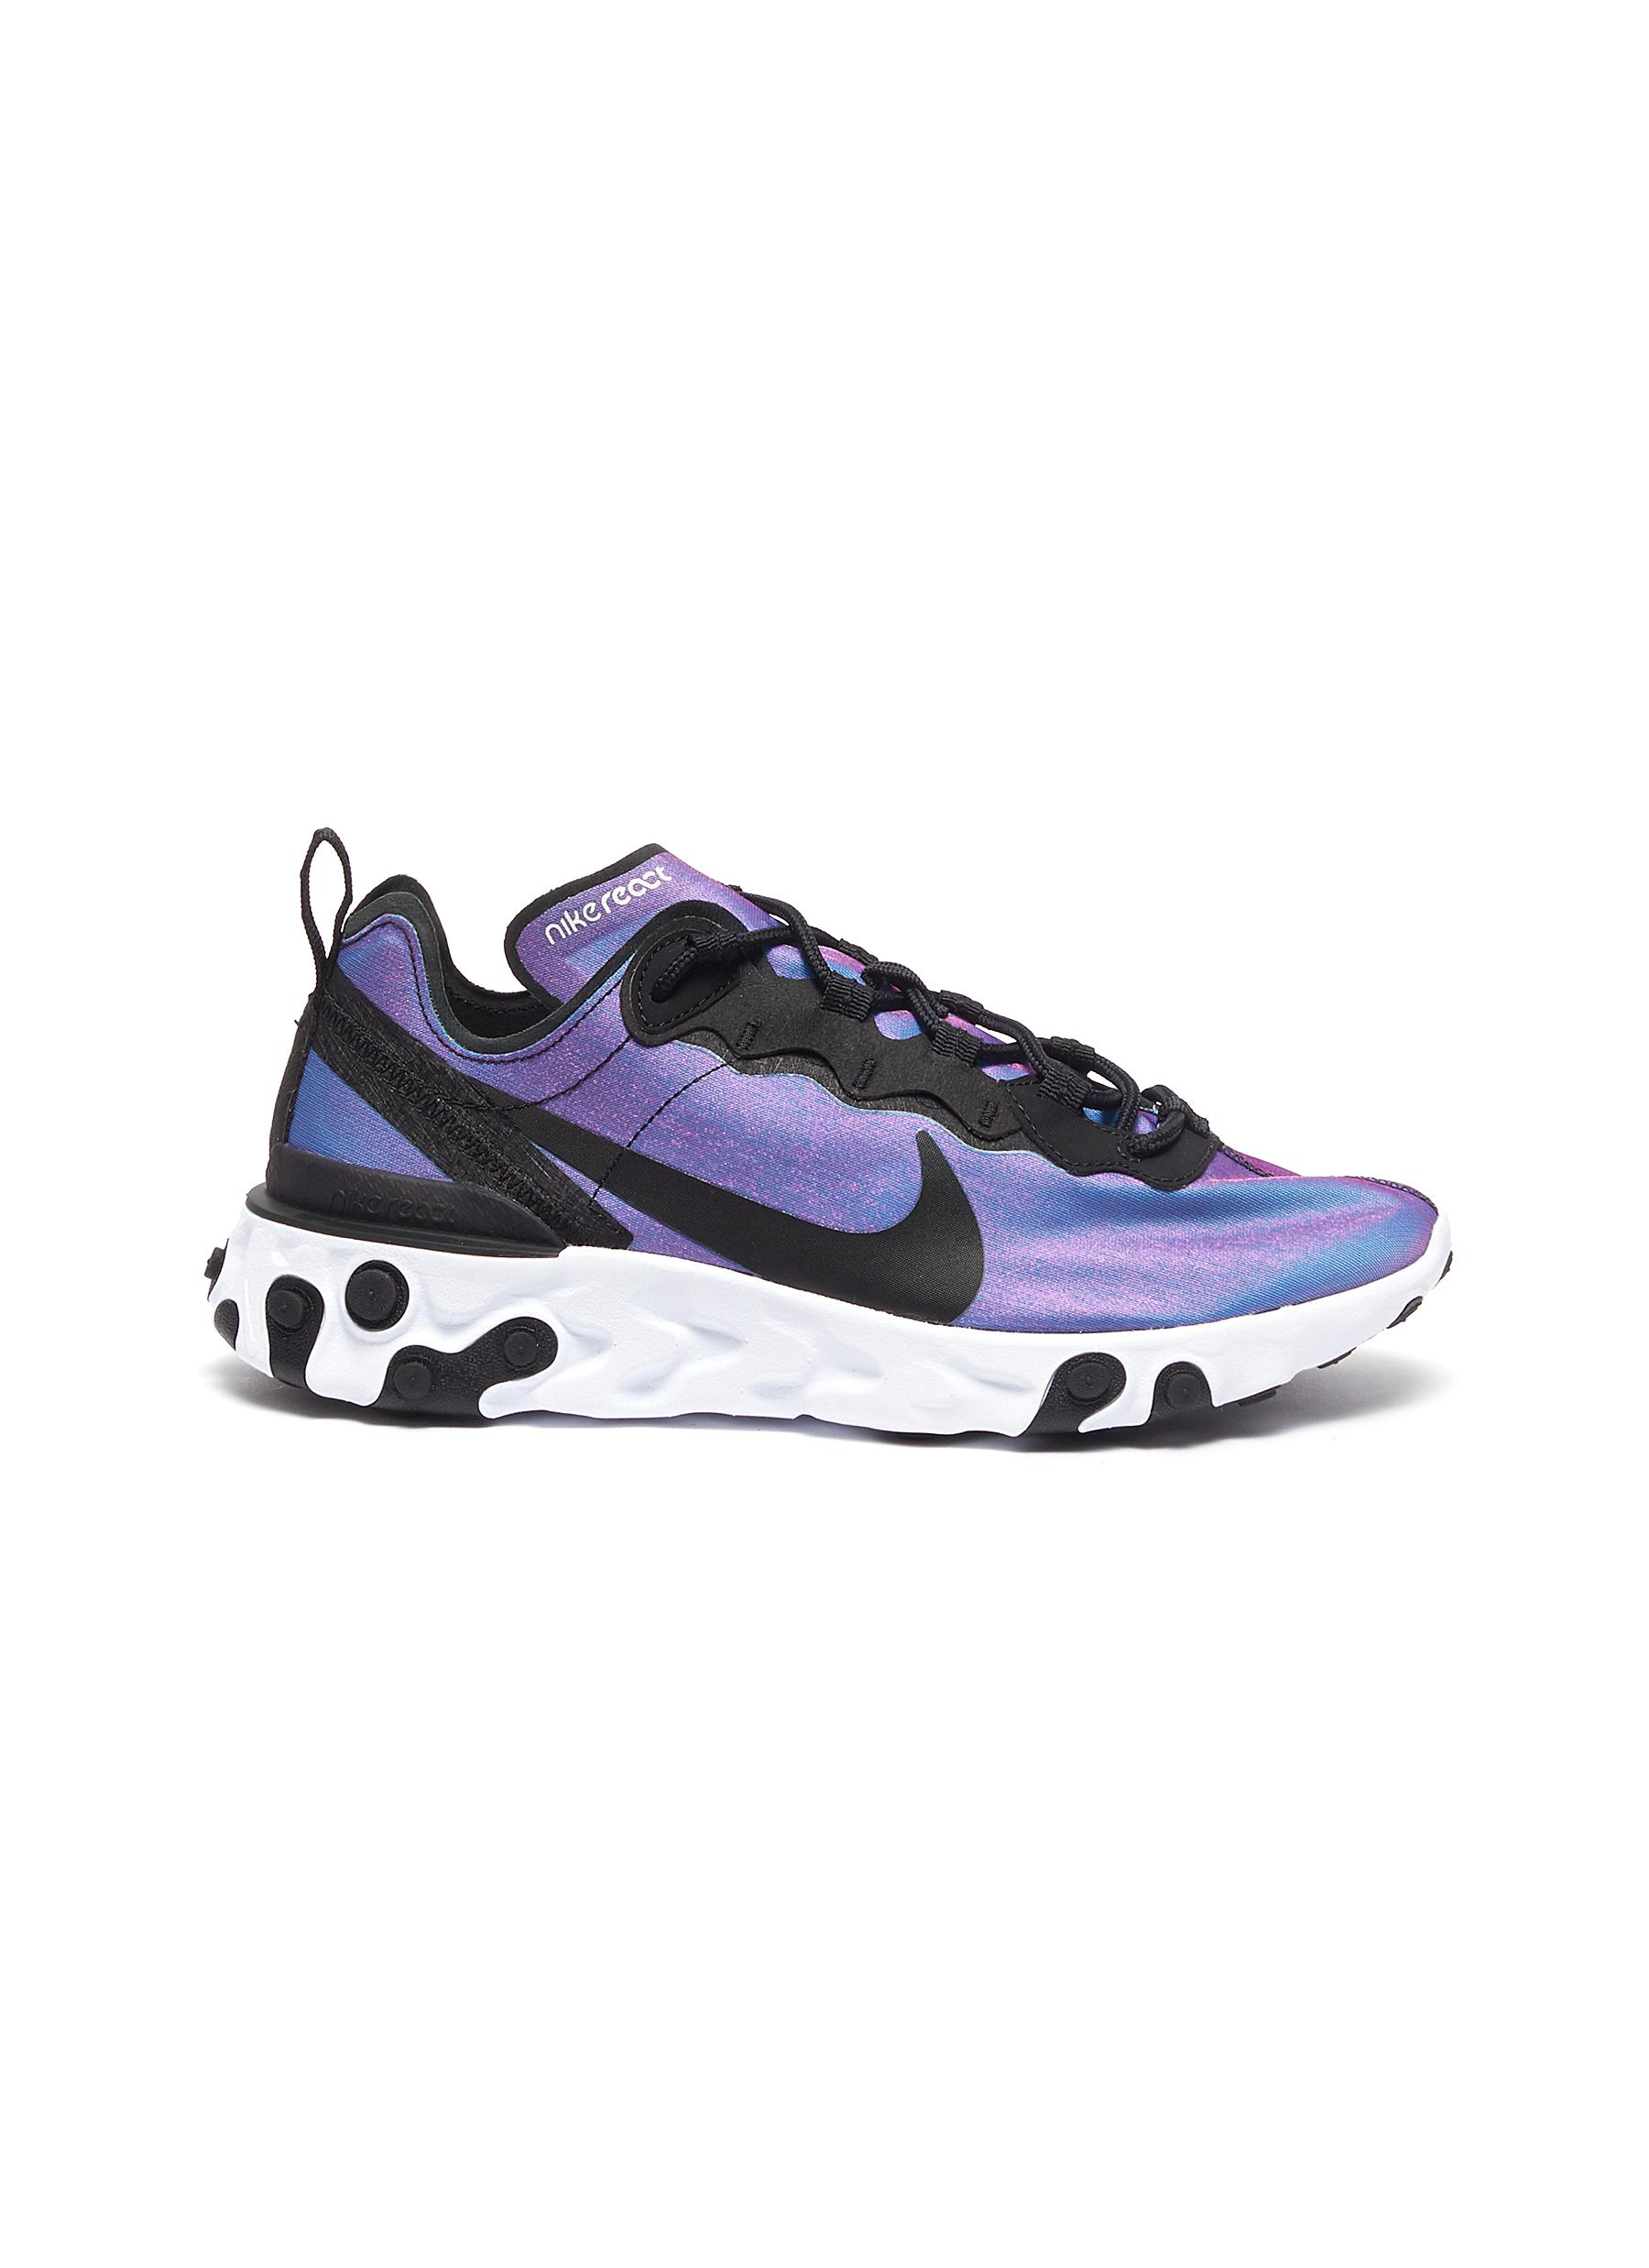 2951fe94ed86f6 Main View - Click To Enlarge - Nike -  React Element 55  sneakers